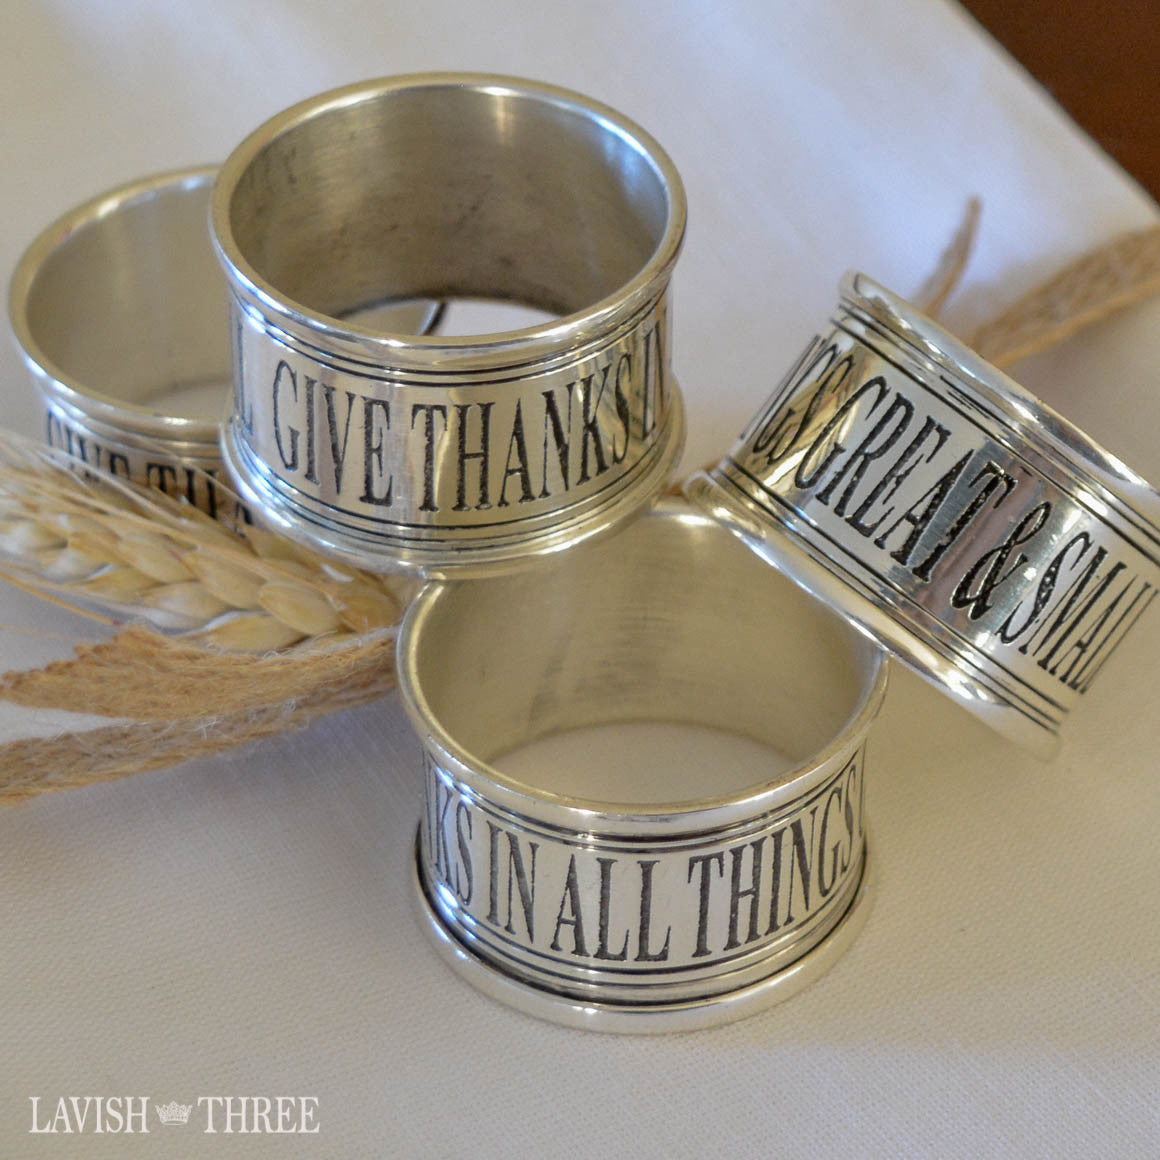 Give Thanks silver stainless steel metal elegant napkin rings